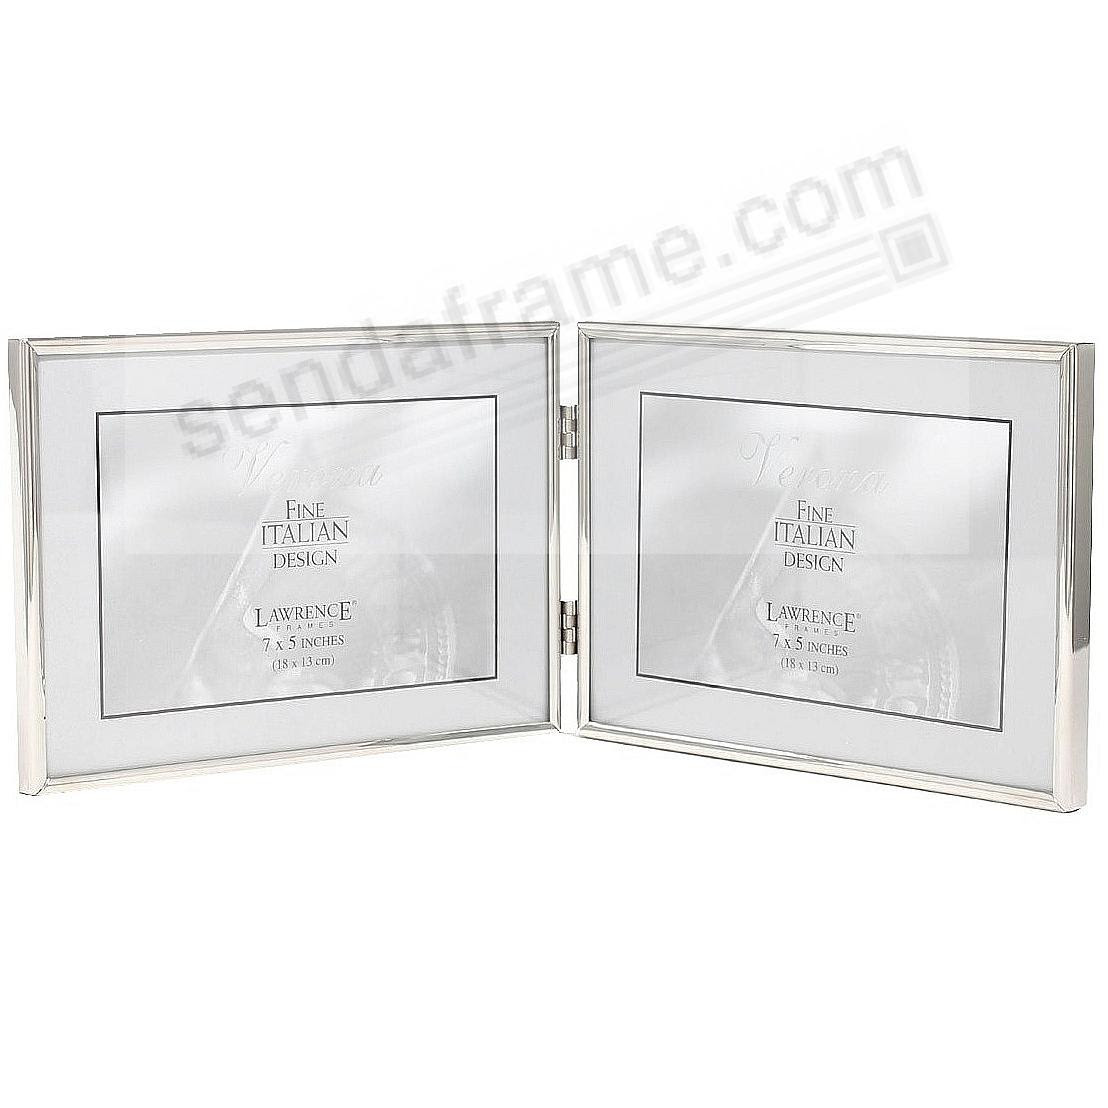 Polished Simply Silver Double Landscape Hinged 7x5 Frame By Lawrence